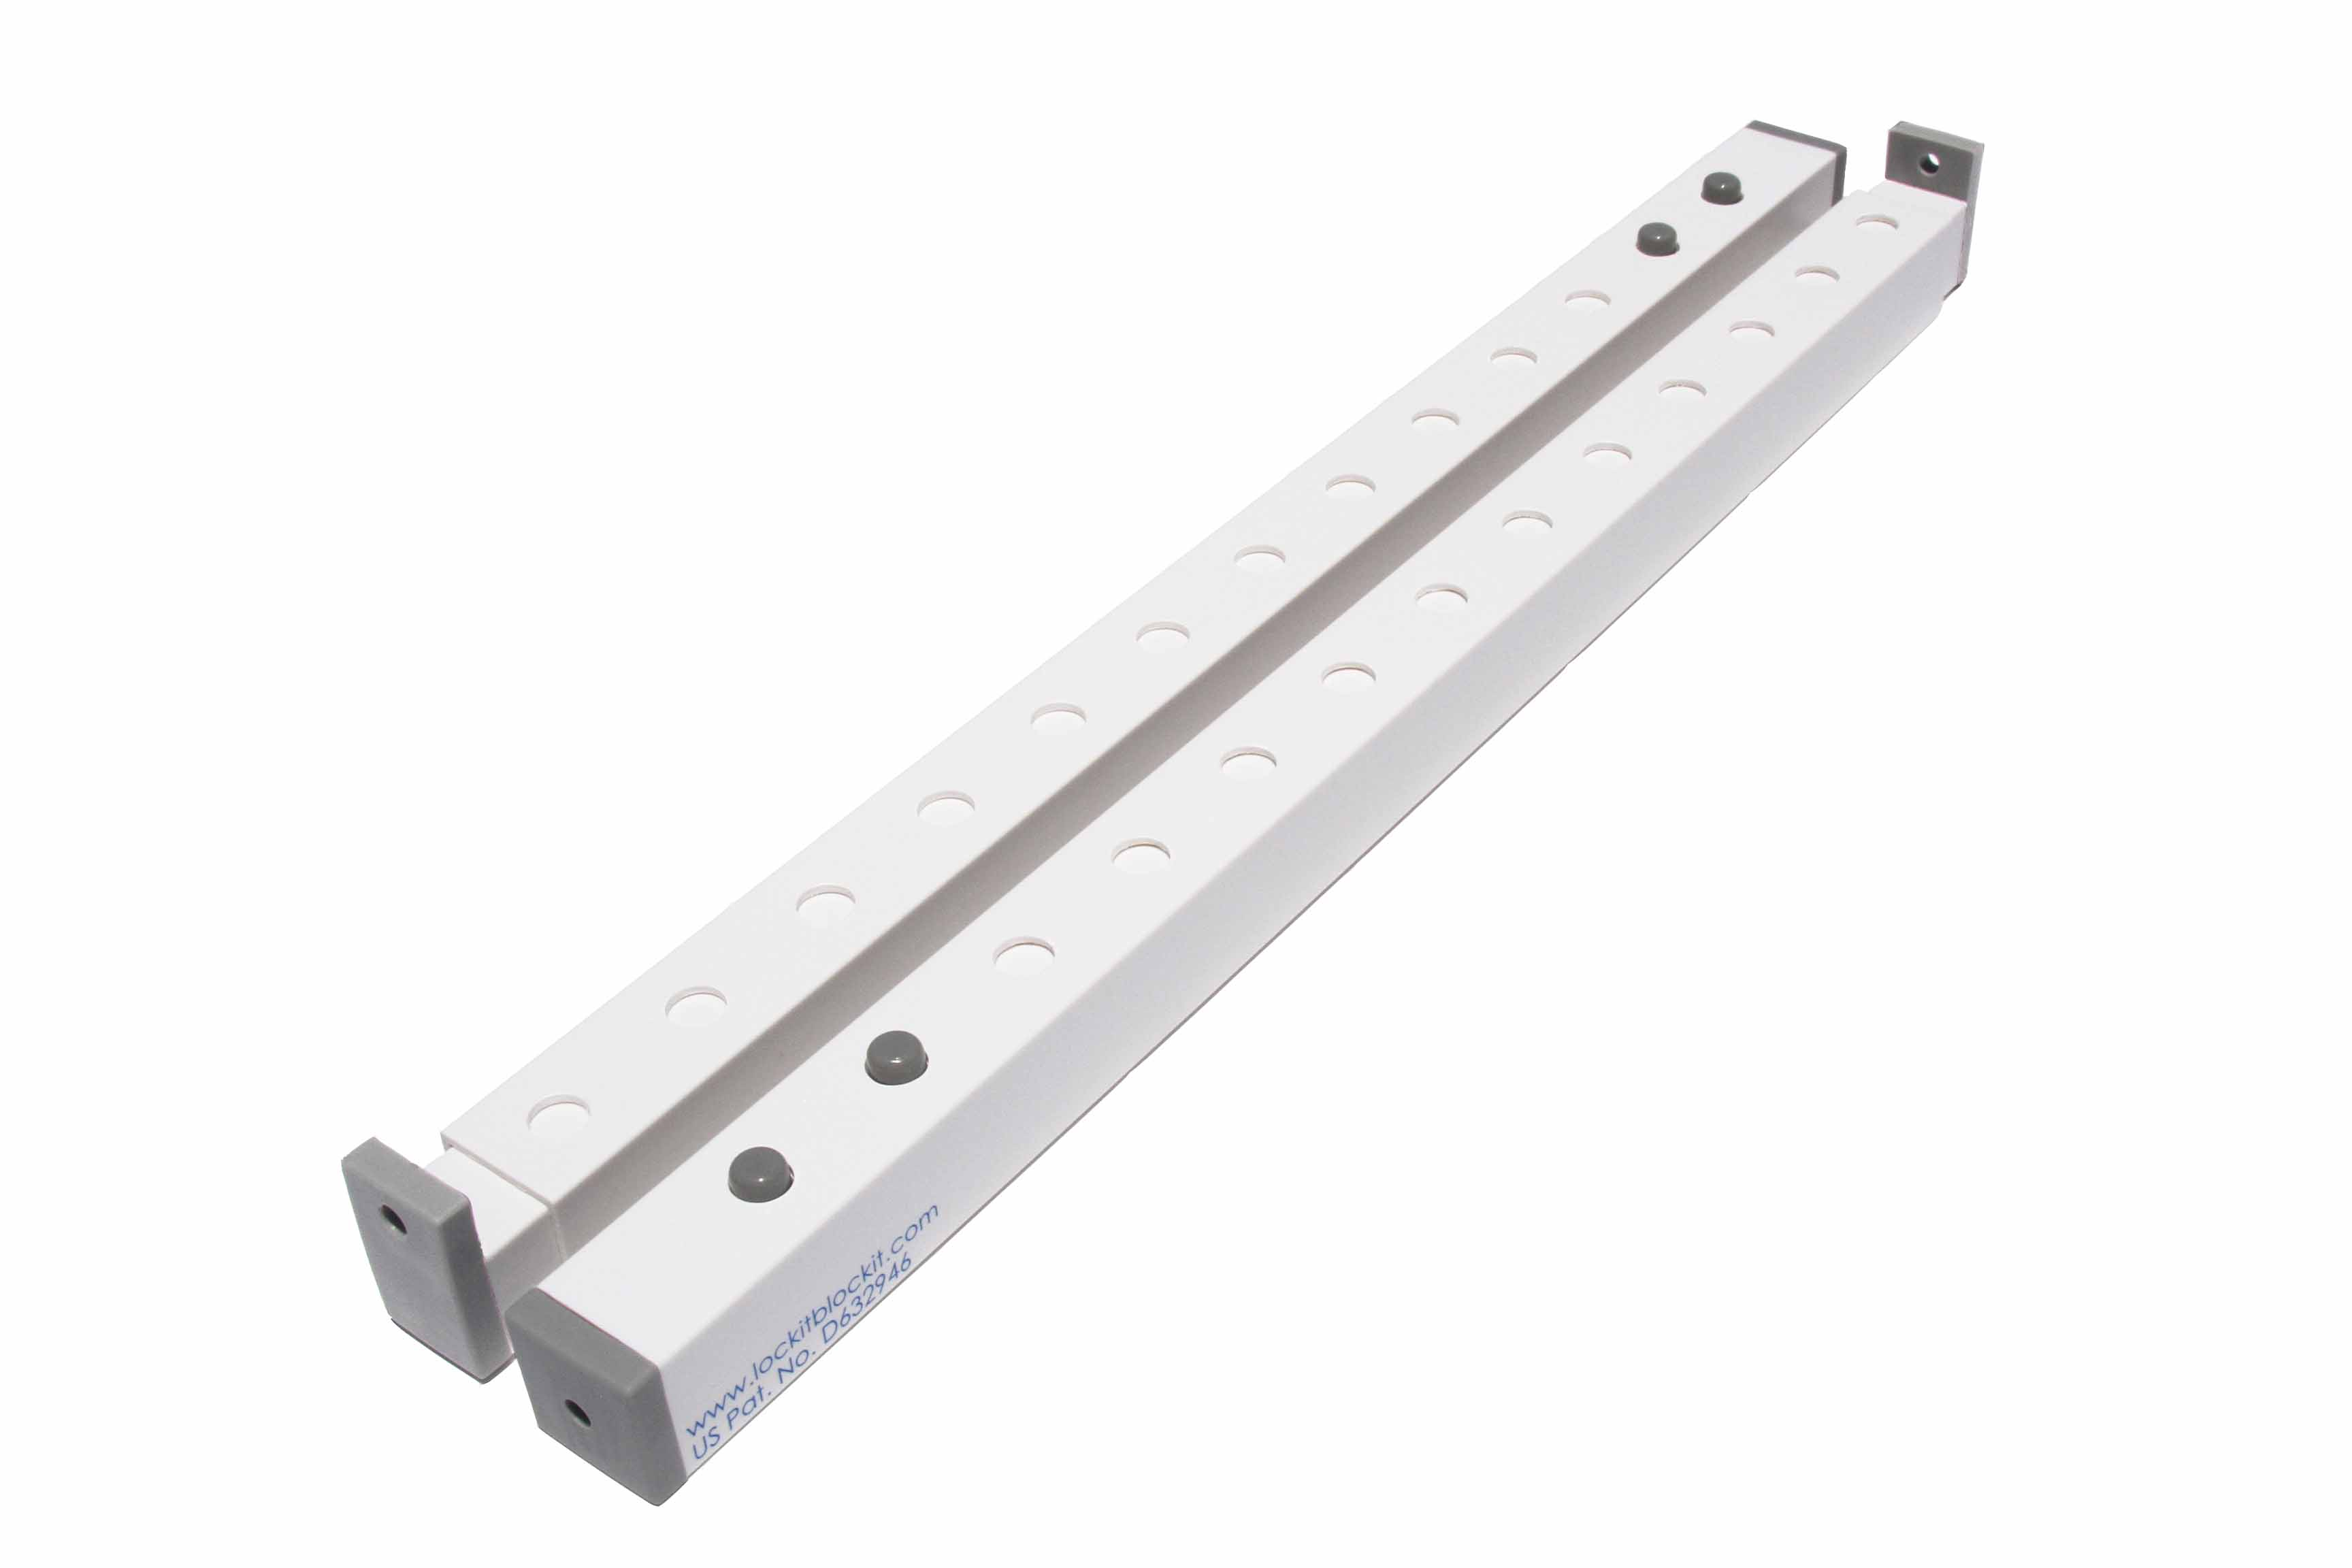 Lock-it Block-it home security burglar bar for upright windows.